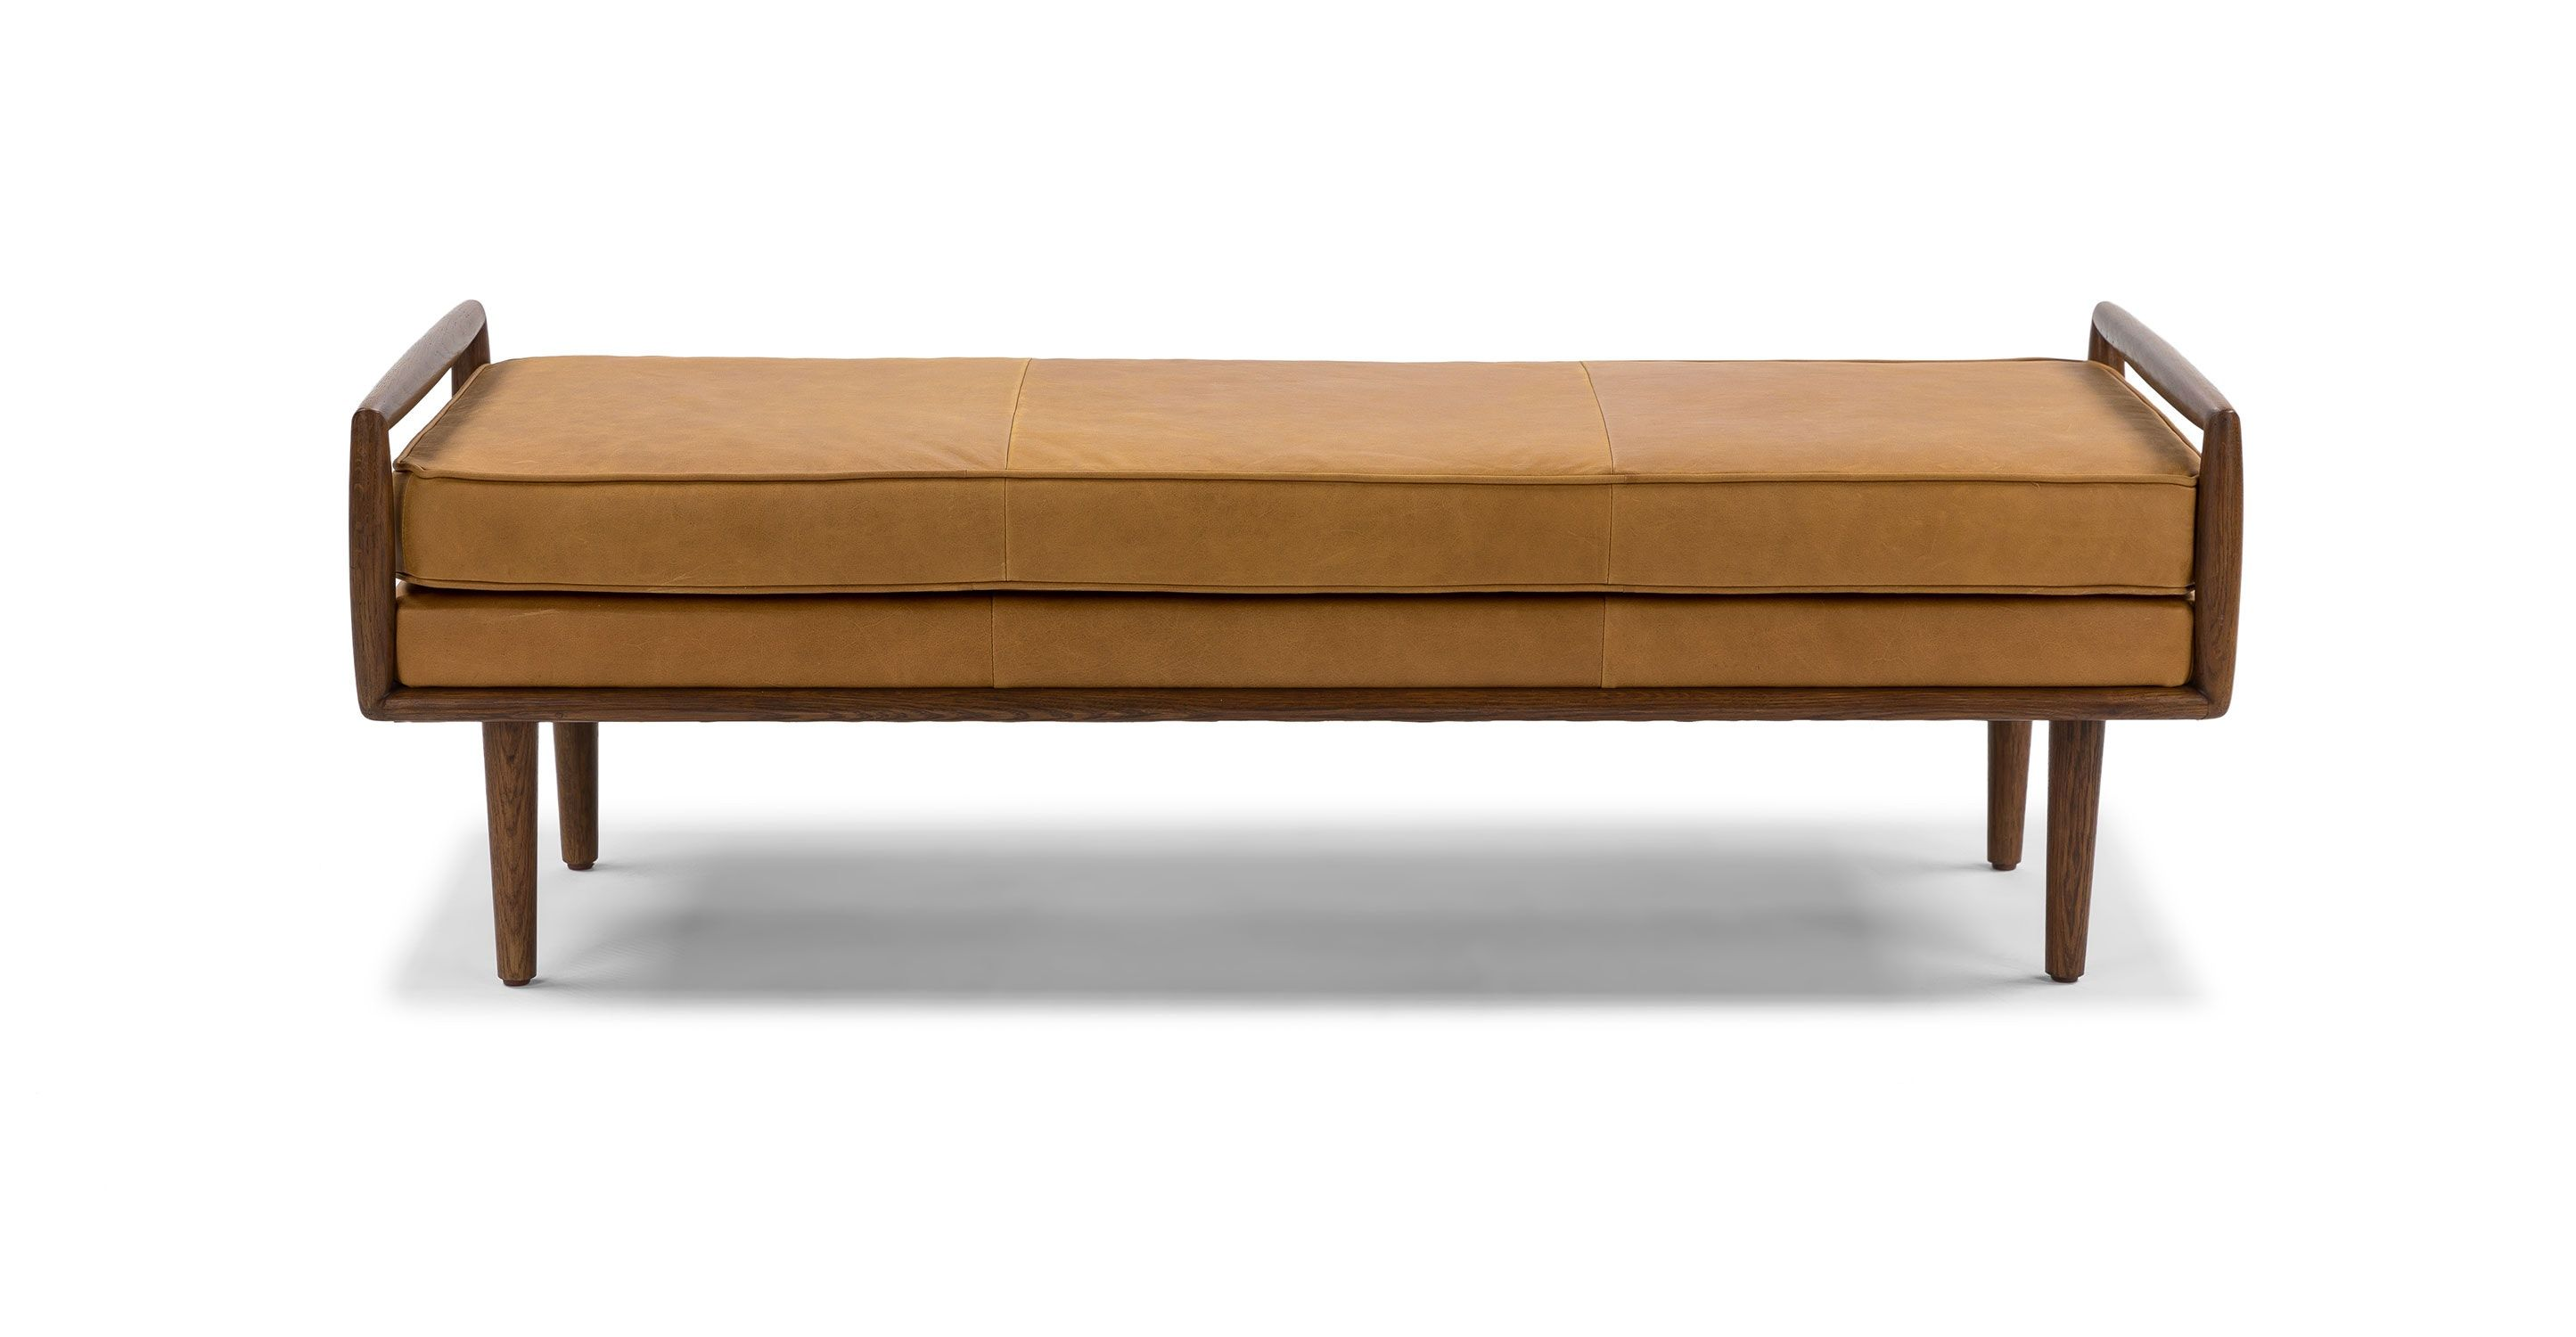 Fabulous Ansa Charme Tan Bench Modern Bedroom Furniture Sets Andrewgaddart Wooden Chair Designs For Living Room Andrewgaddartcom